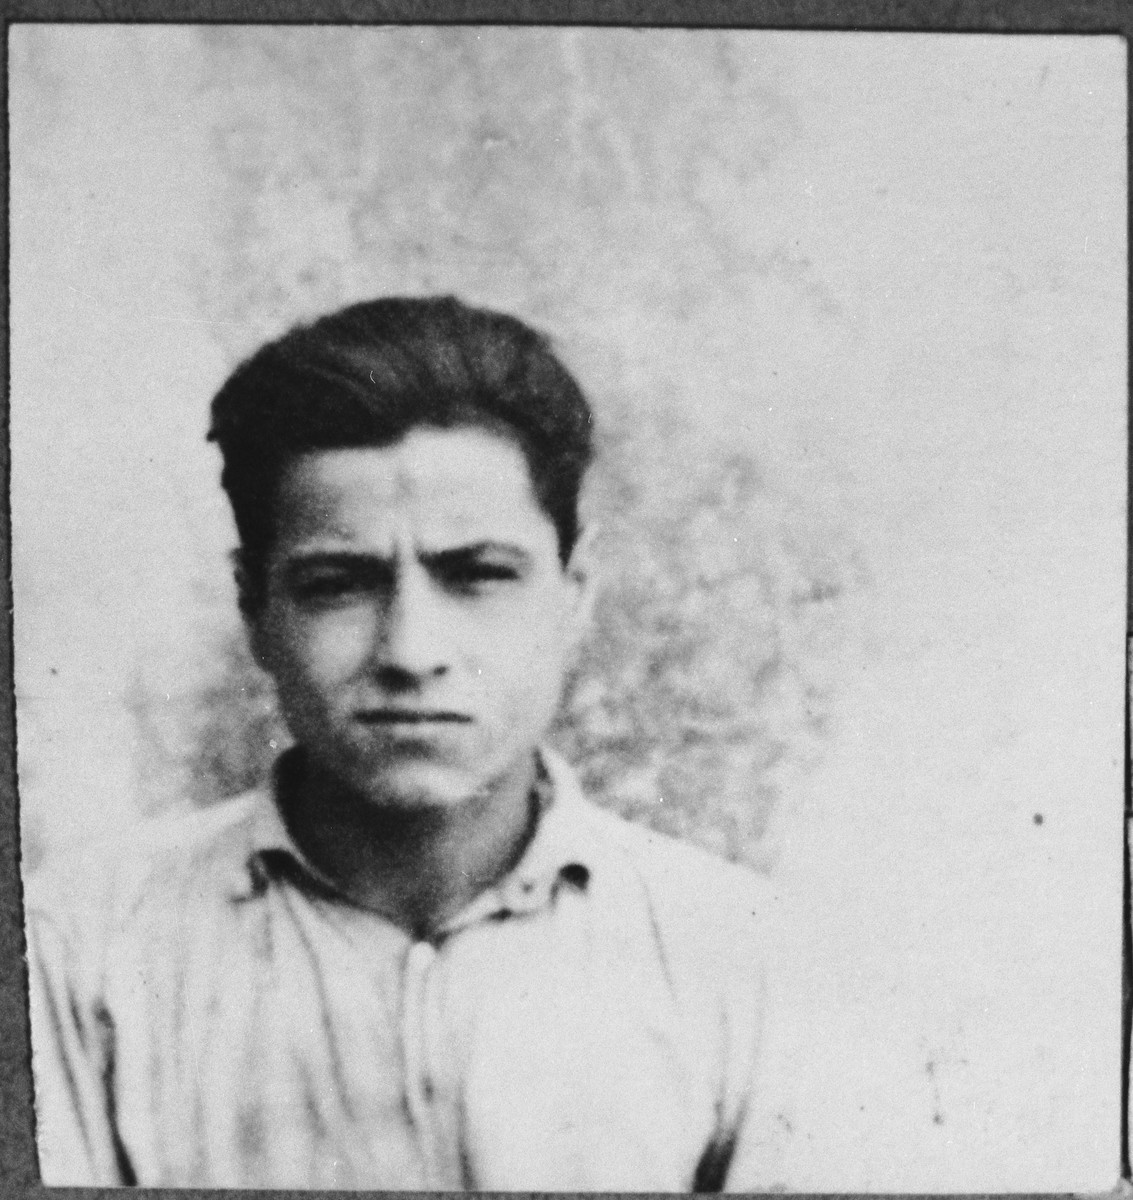 Portrait of Yakov Kassorla, son of Solomon Kassorla.  He was a student.  He lived at Drinska 81 in Bitola.